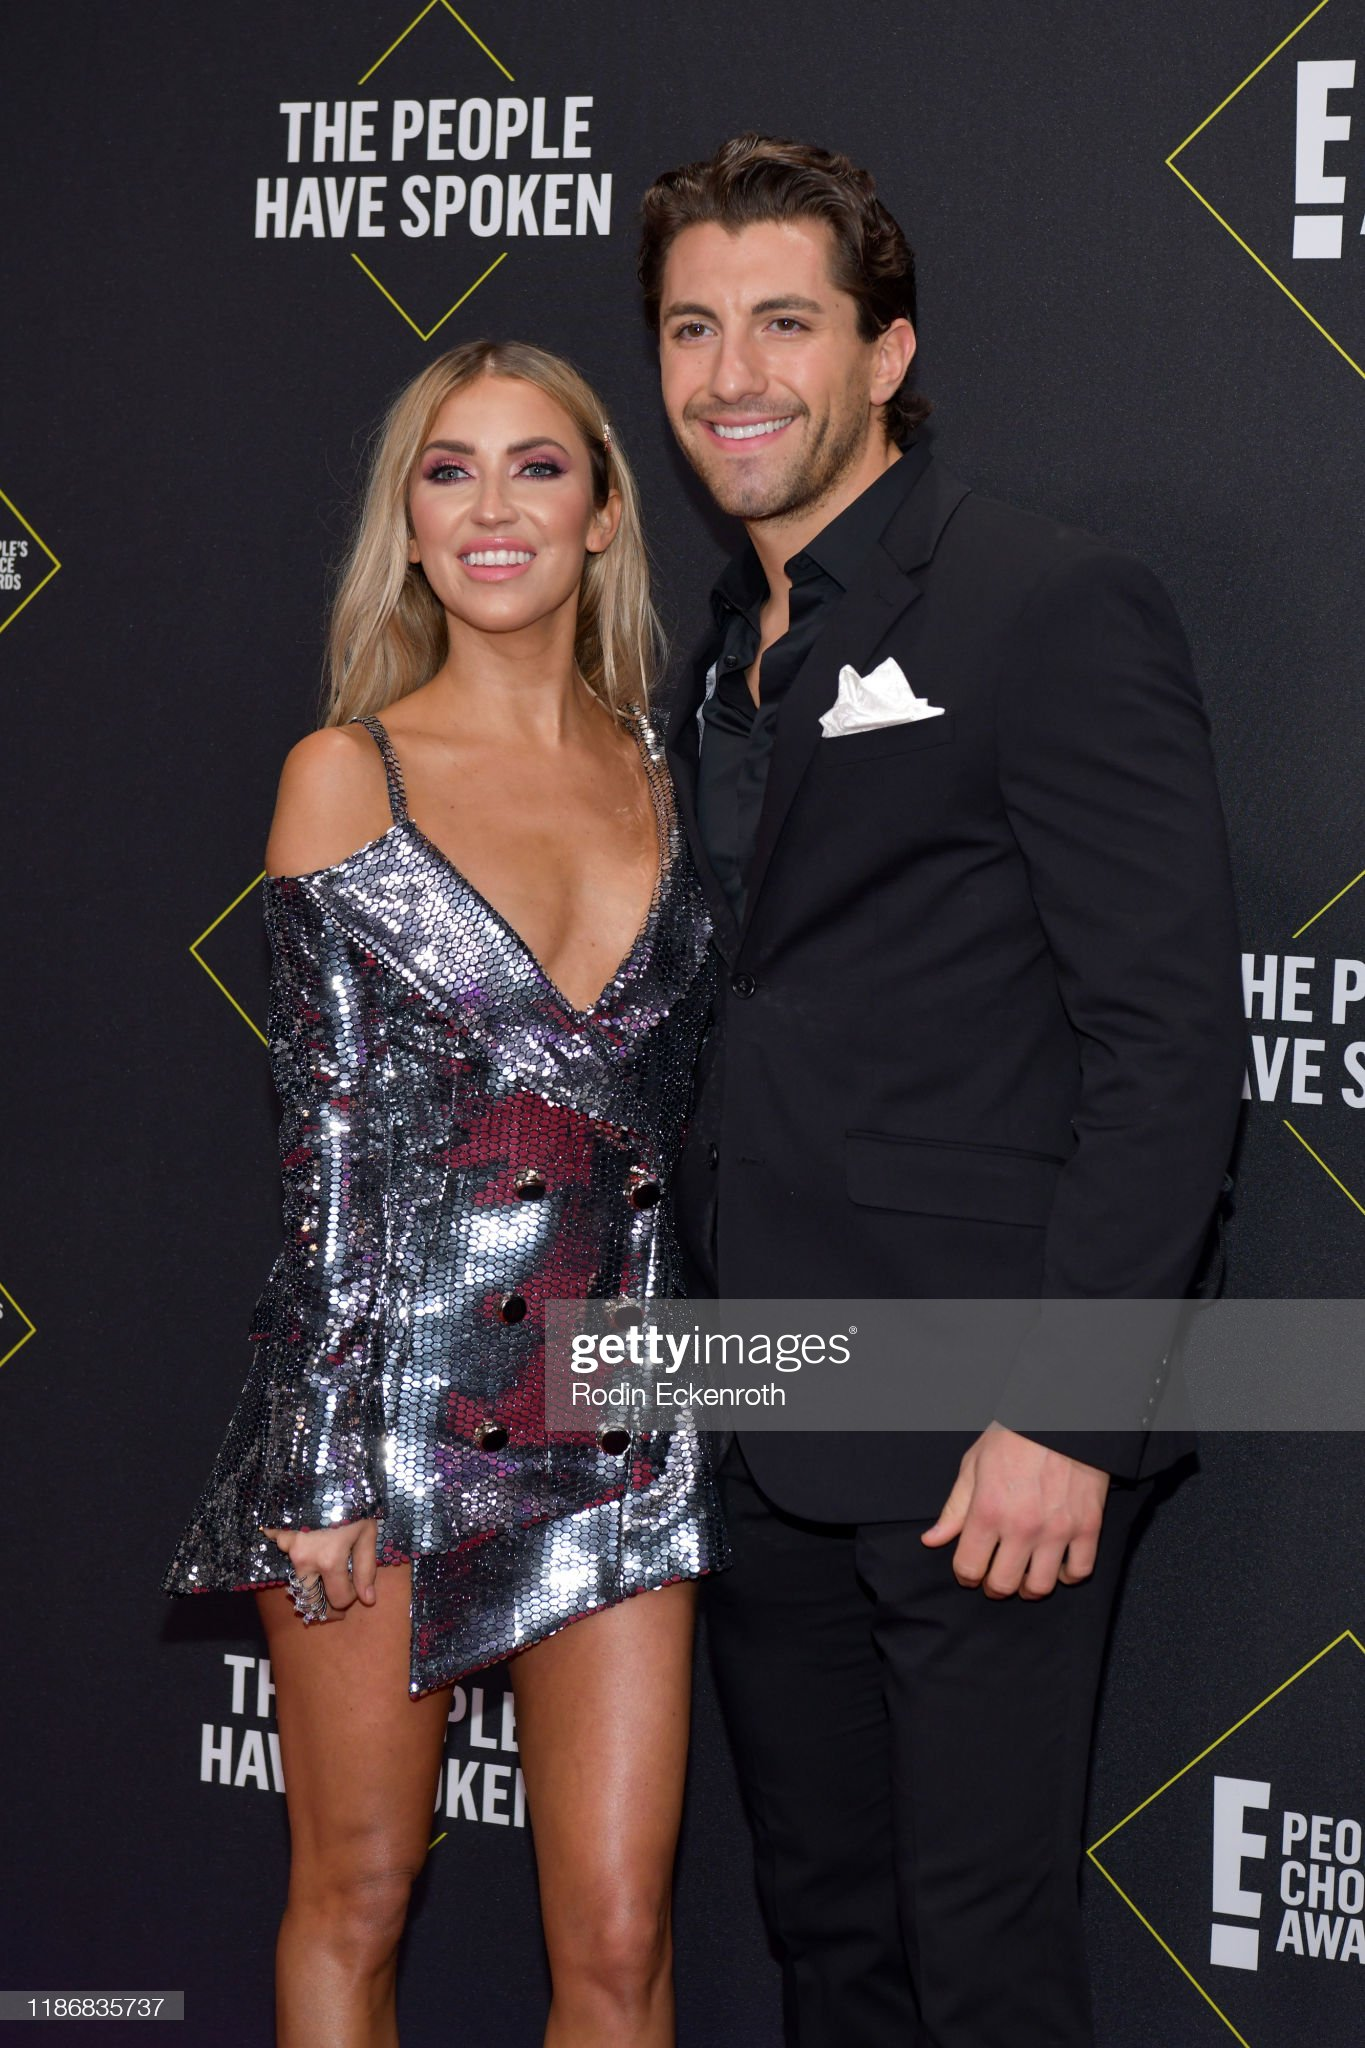 Kaitlyn Bristowe - Jason Tartick - FAN Forum - Discussion  - Page 45 Kaitlyn-bristowe-and-jason-tartick-attend-the-2019-e-peoples-choice-picture-id1186835737?s=2048x2048